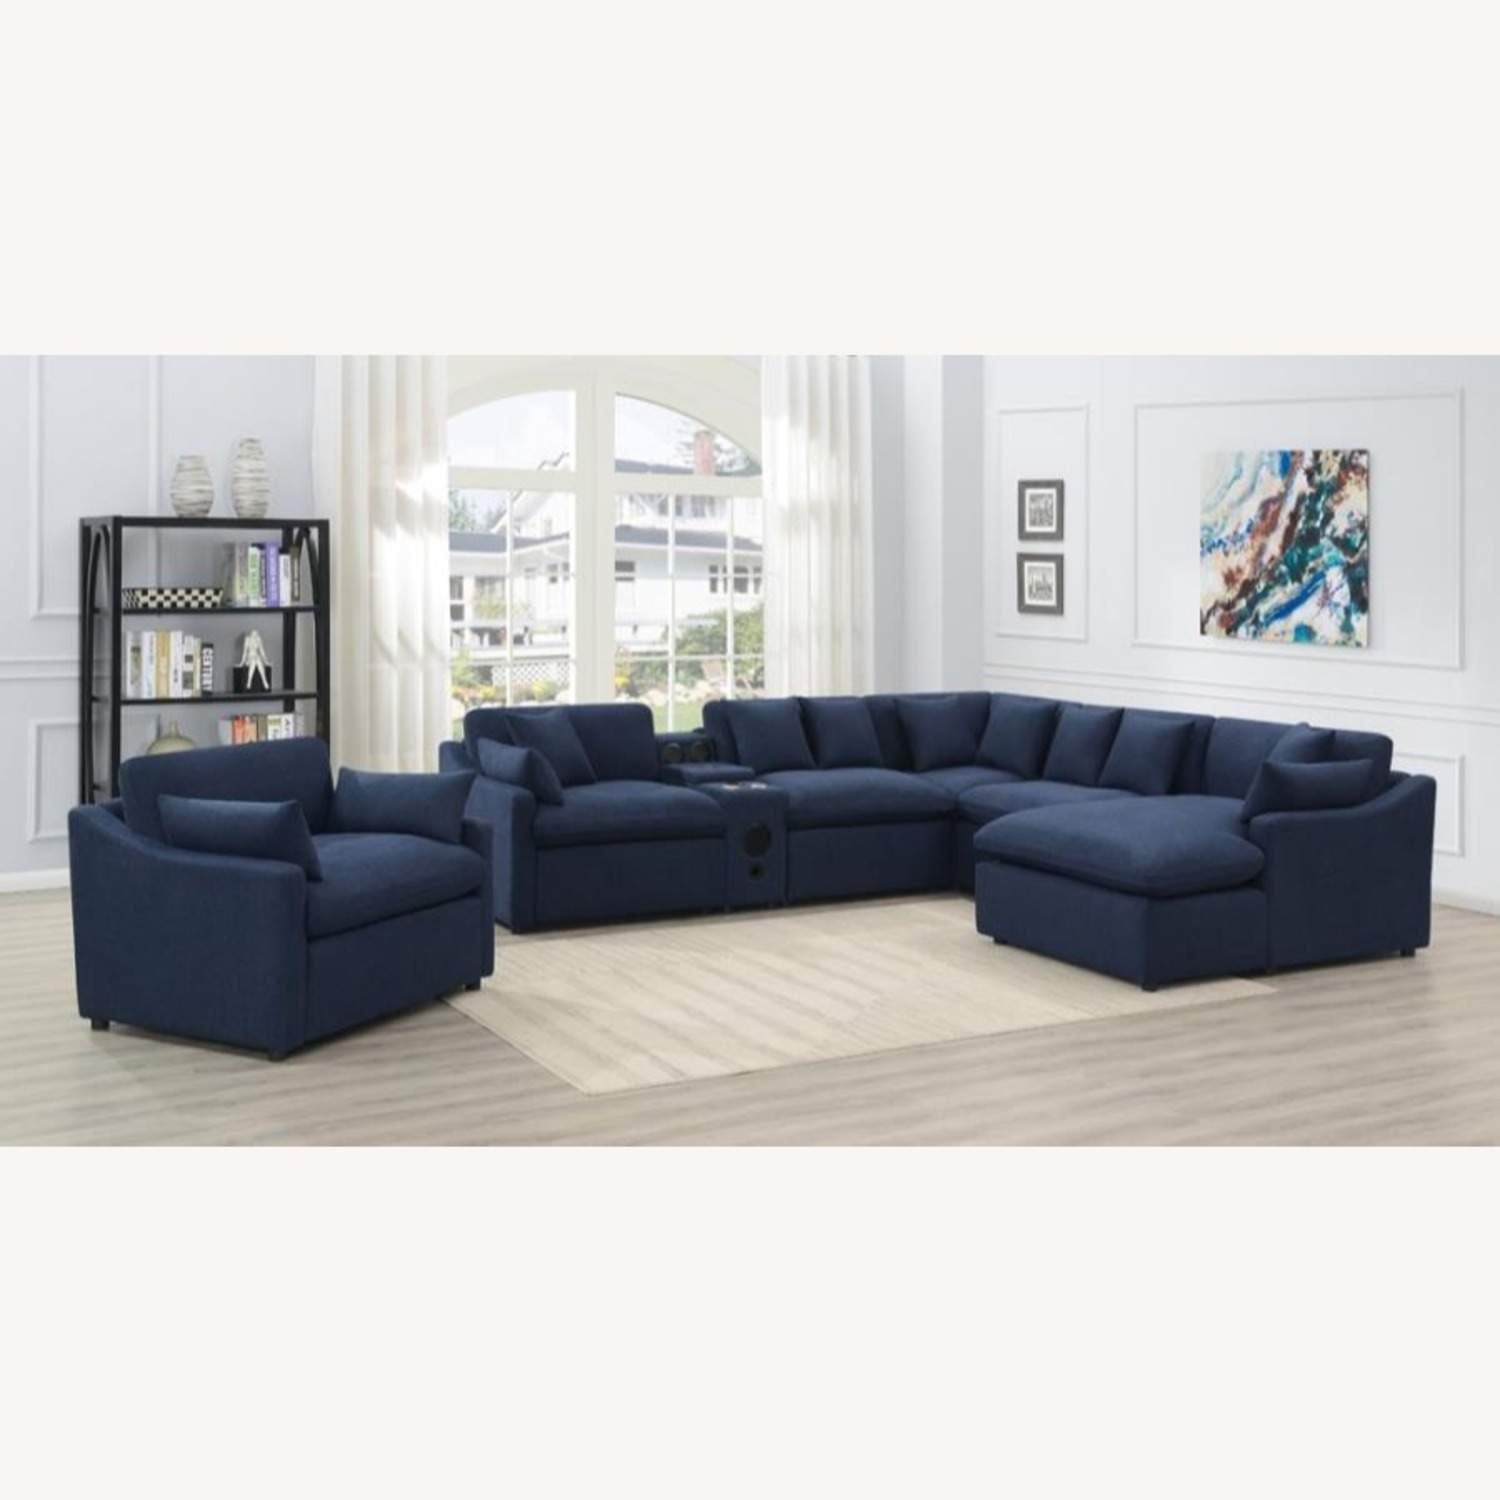 Power Recliner In Linen-Like Midnight Blue Fabric - image-4